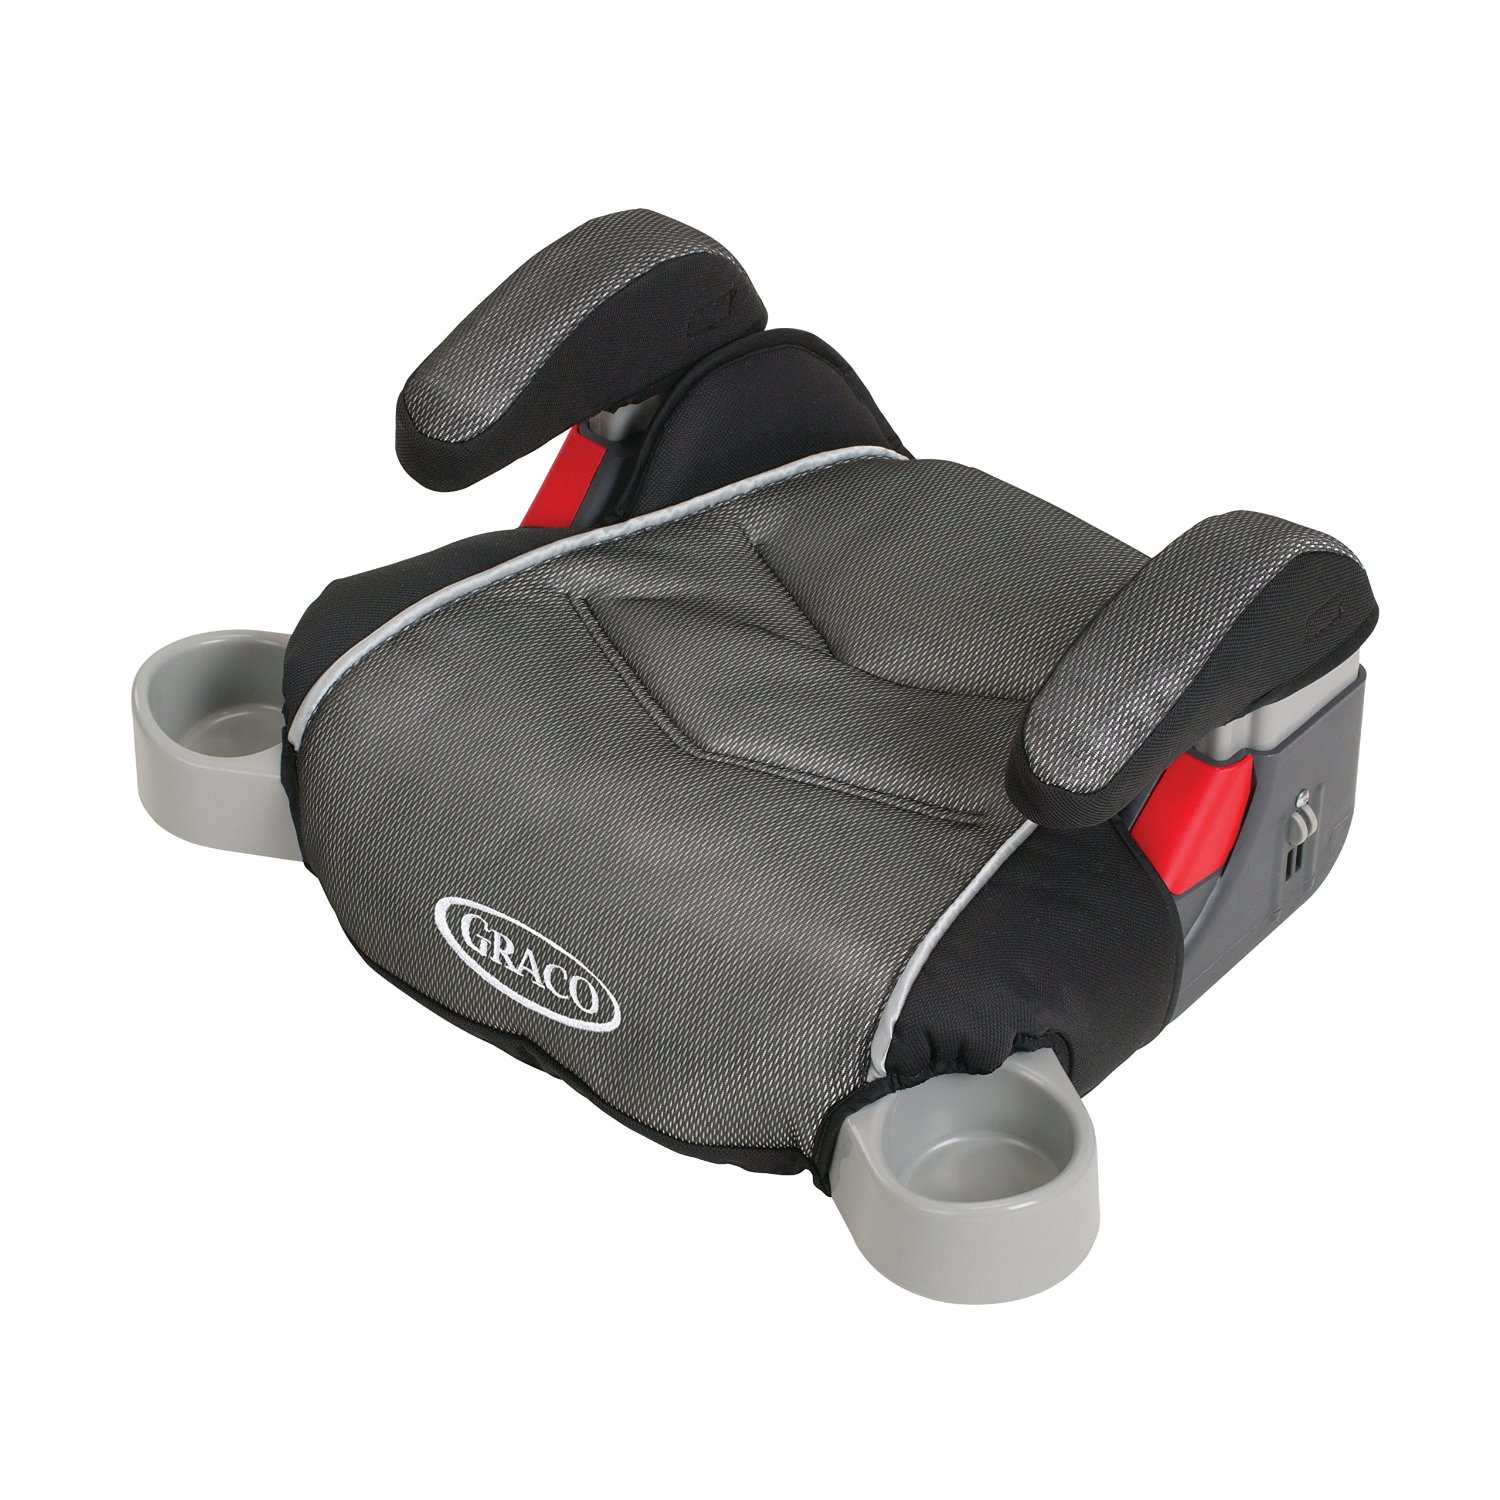 Best Backless Graco TurboBooster Car Seat